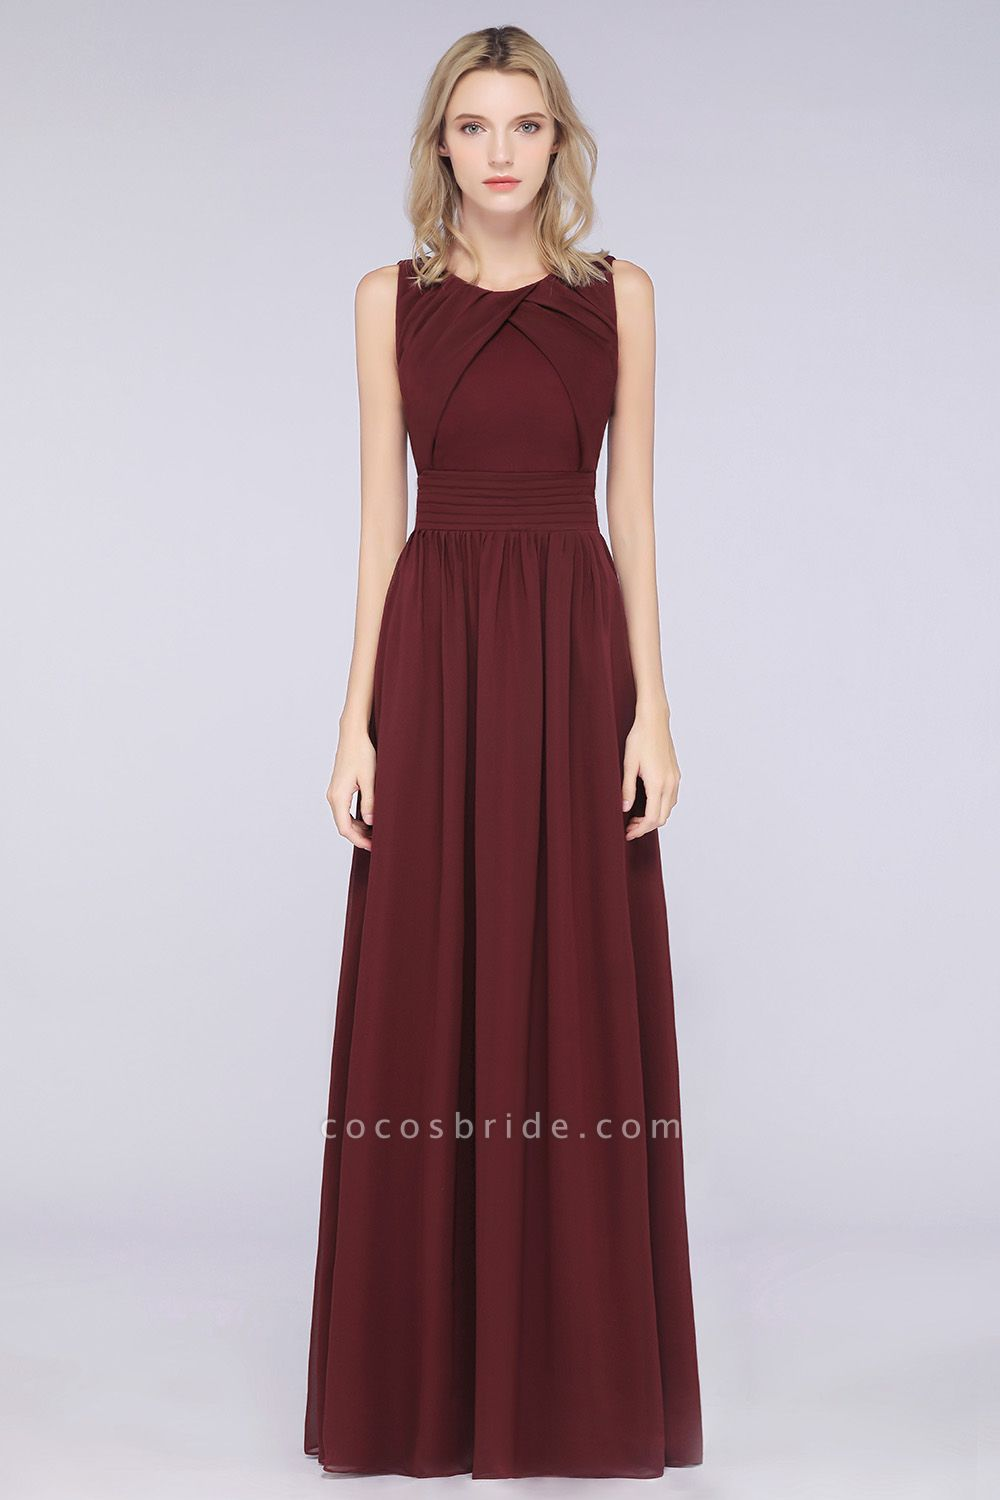 A-Line Chiffon Round-Neck Sleeveless Floor-Length Bridesmaid Dress with Ruffles